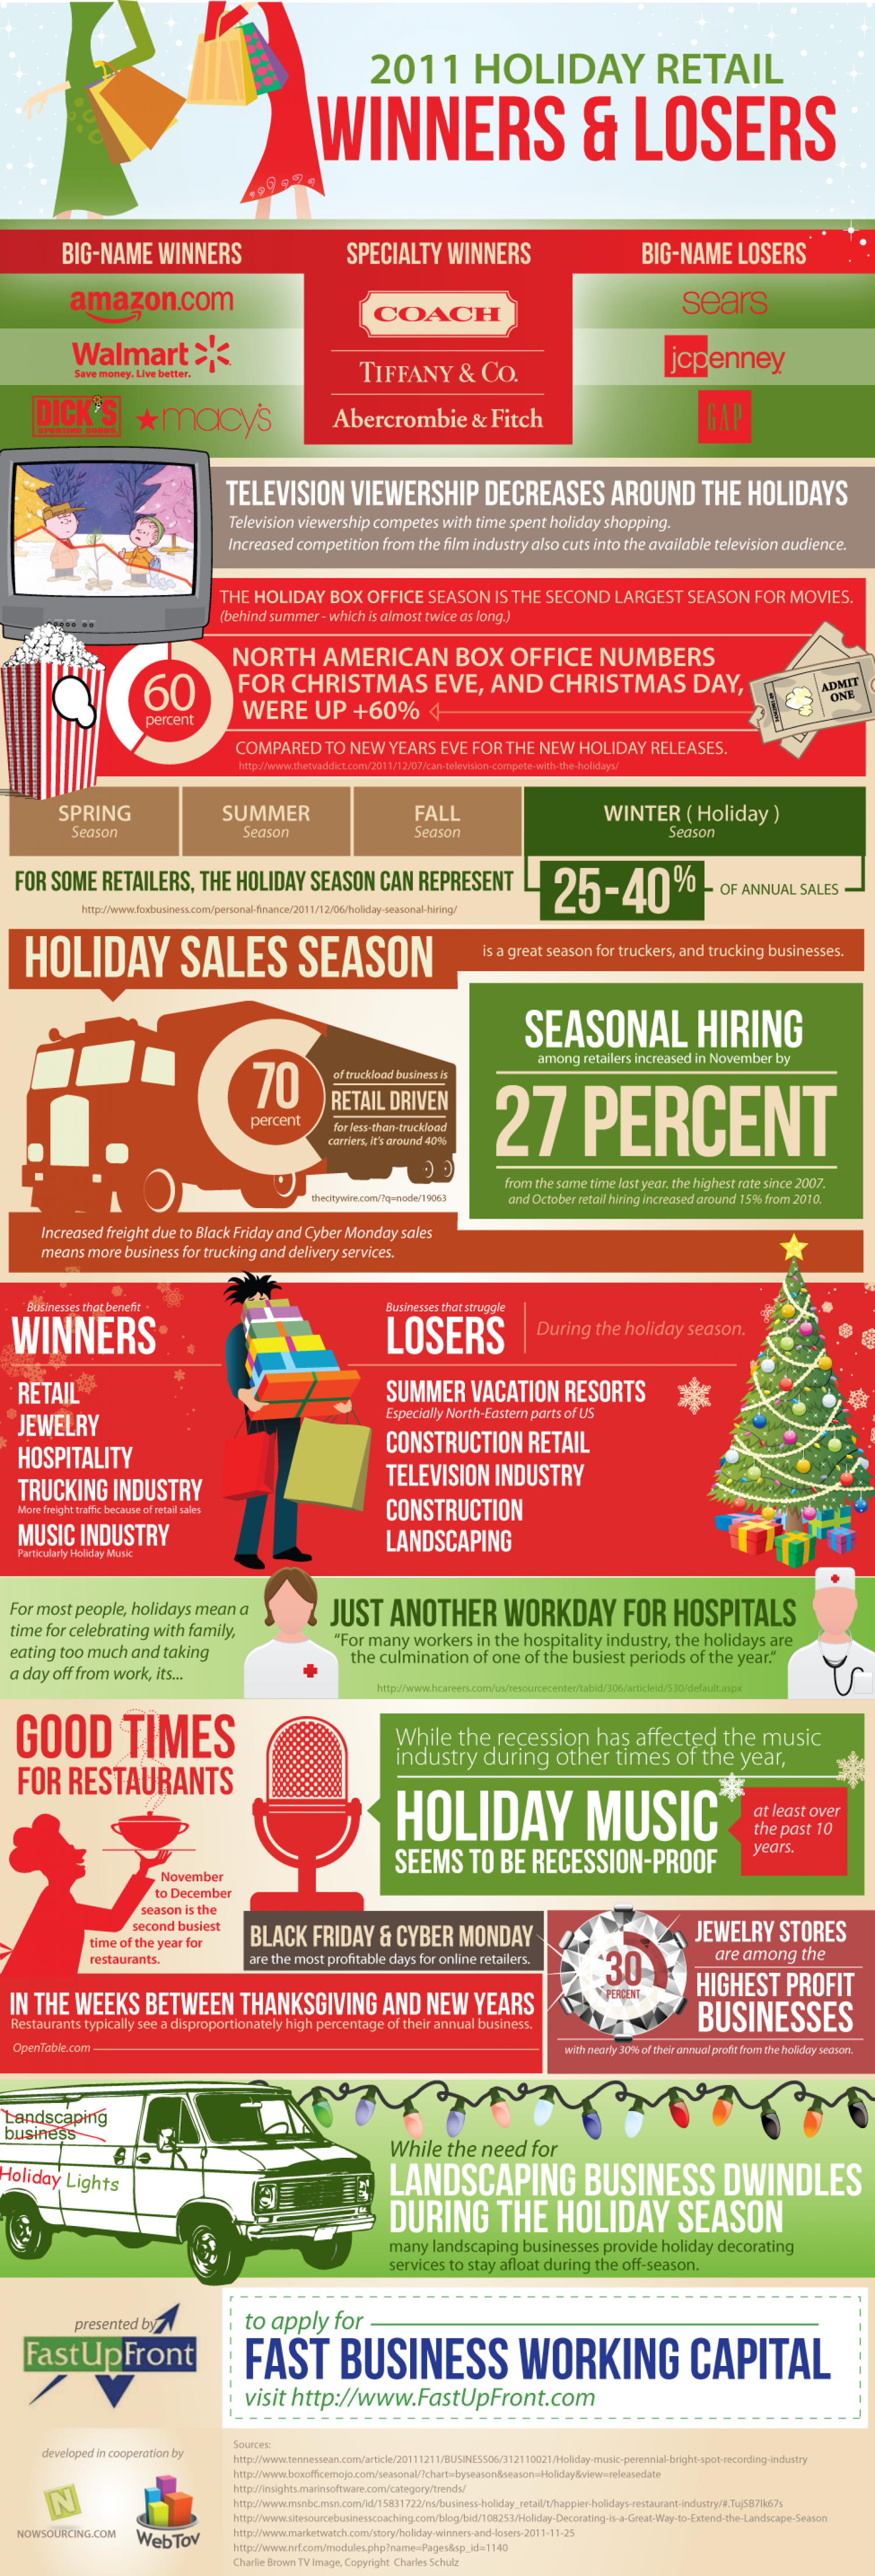 Holiday Retail Winners and Losers Infographic